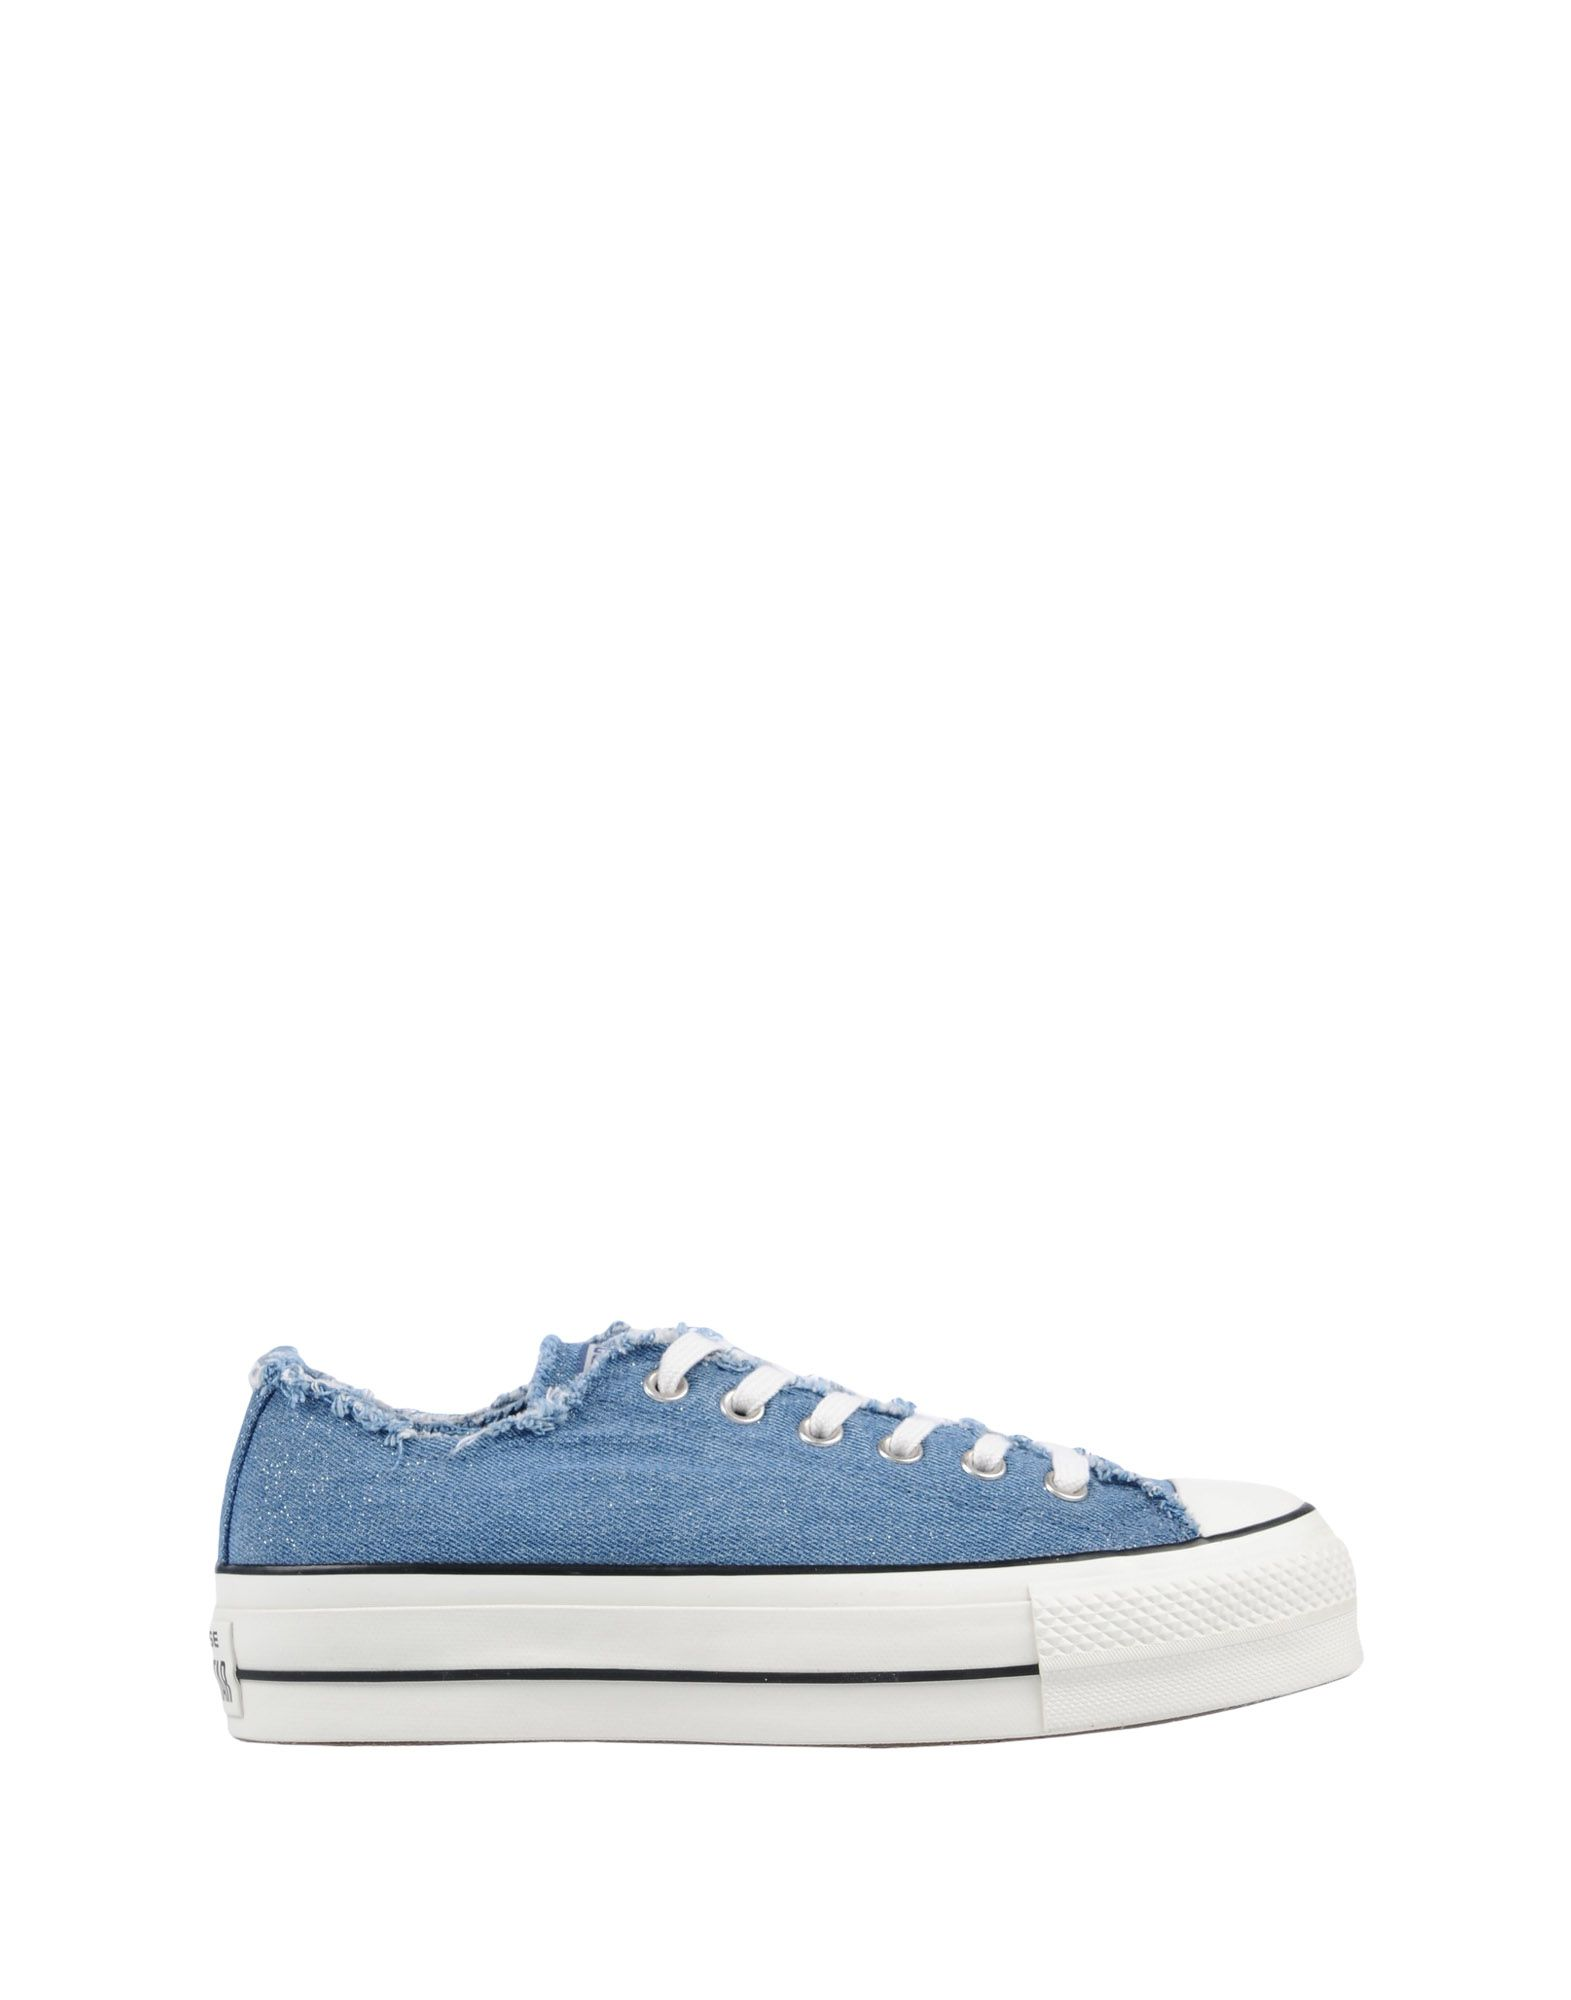 Sneakers Converse All Star Ctas Ox Clean Lift Denim Frayed - Femme - Sneakers Converse All Star sur